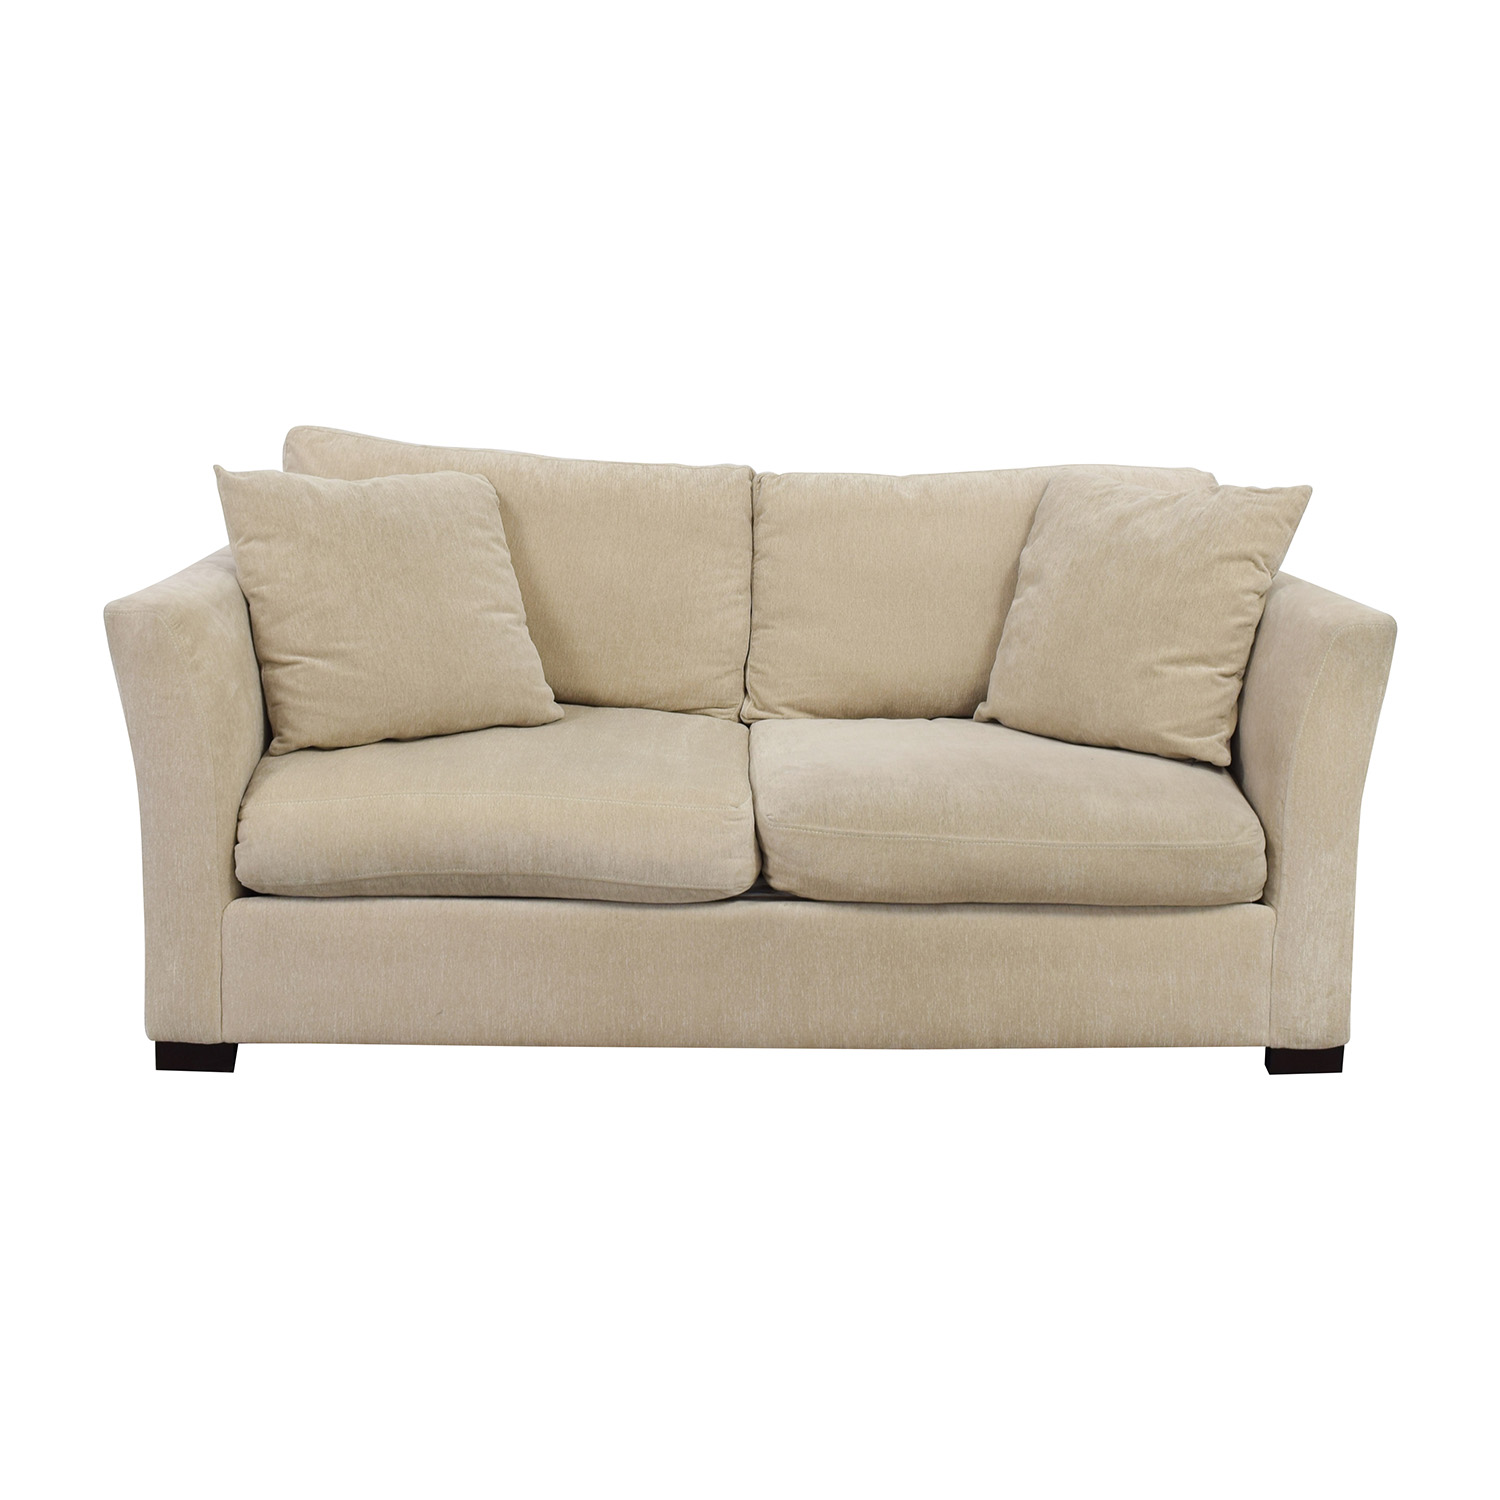 White Two Cushion Fabric Couch